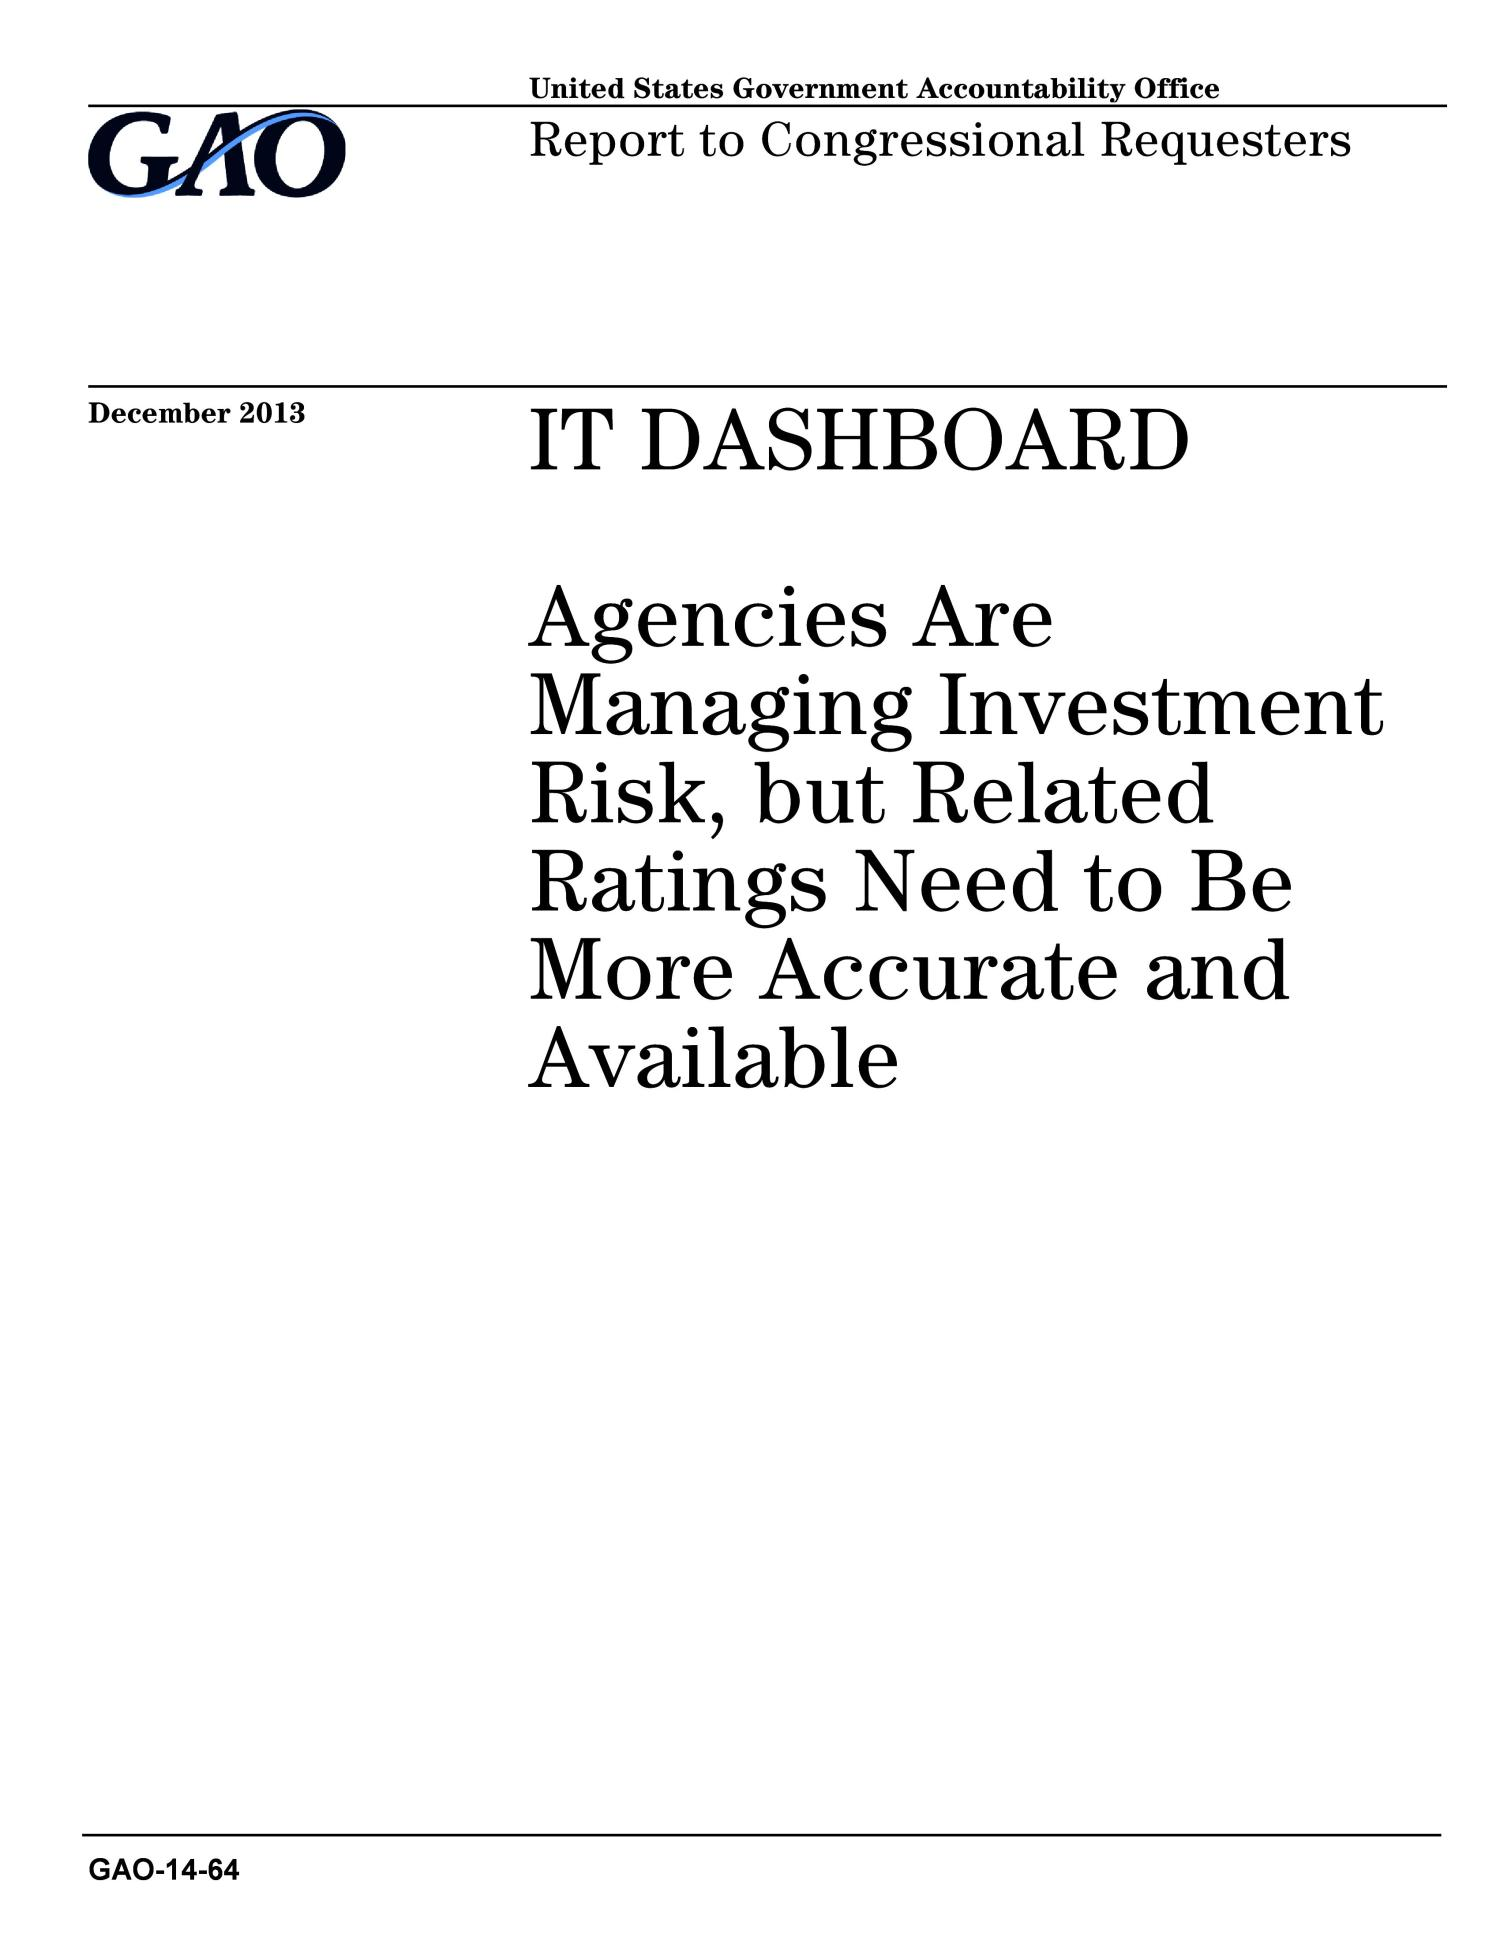 IT Dashboard: Agencies Are Managing Investment Risk, but Related Ratings Need to Be More Accurate and Available                                                                                                      [Sequence #]: 1 of 60